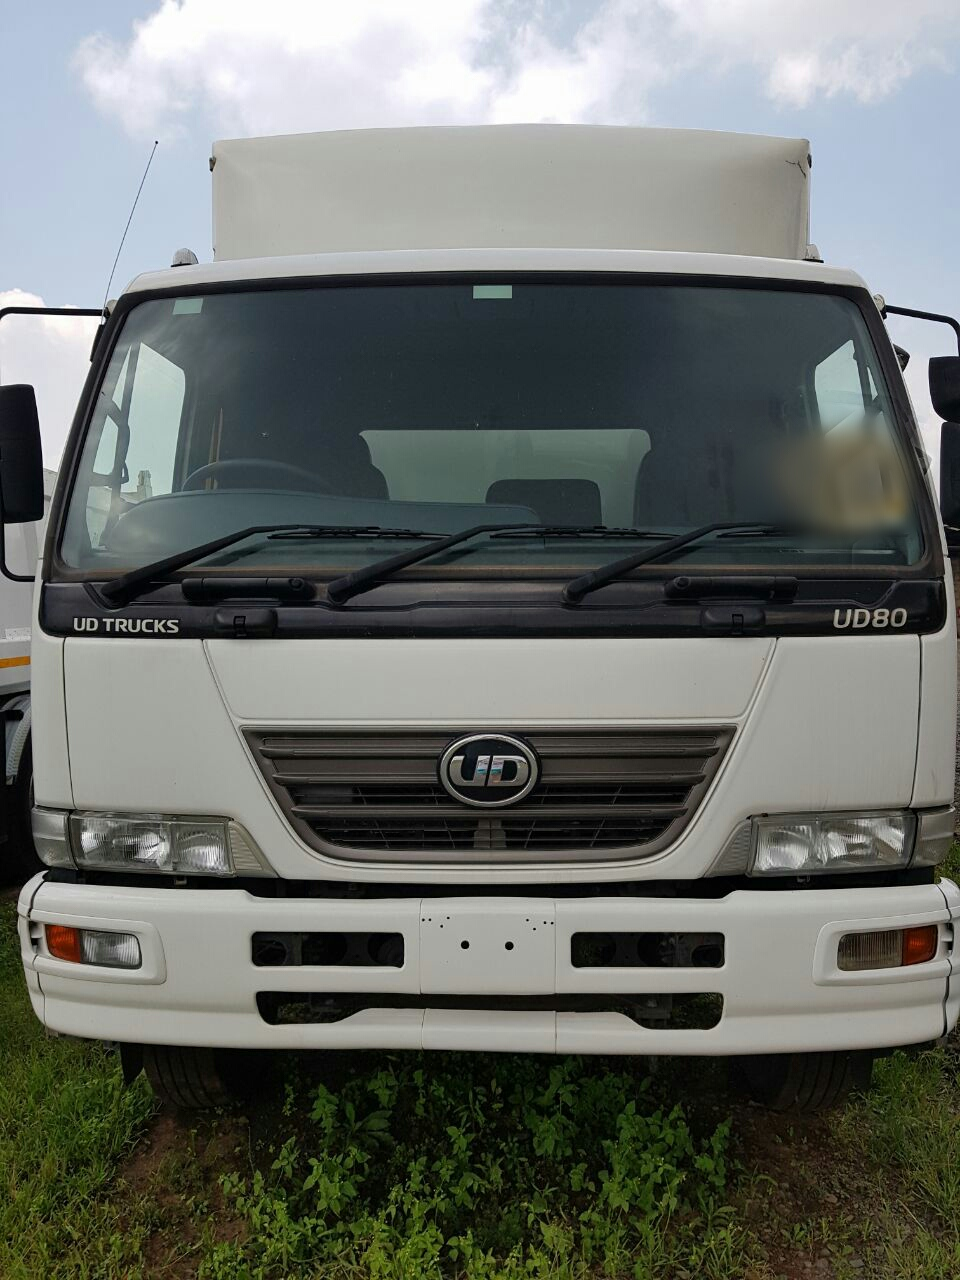 2014 Nissan UD80 closed body for sale